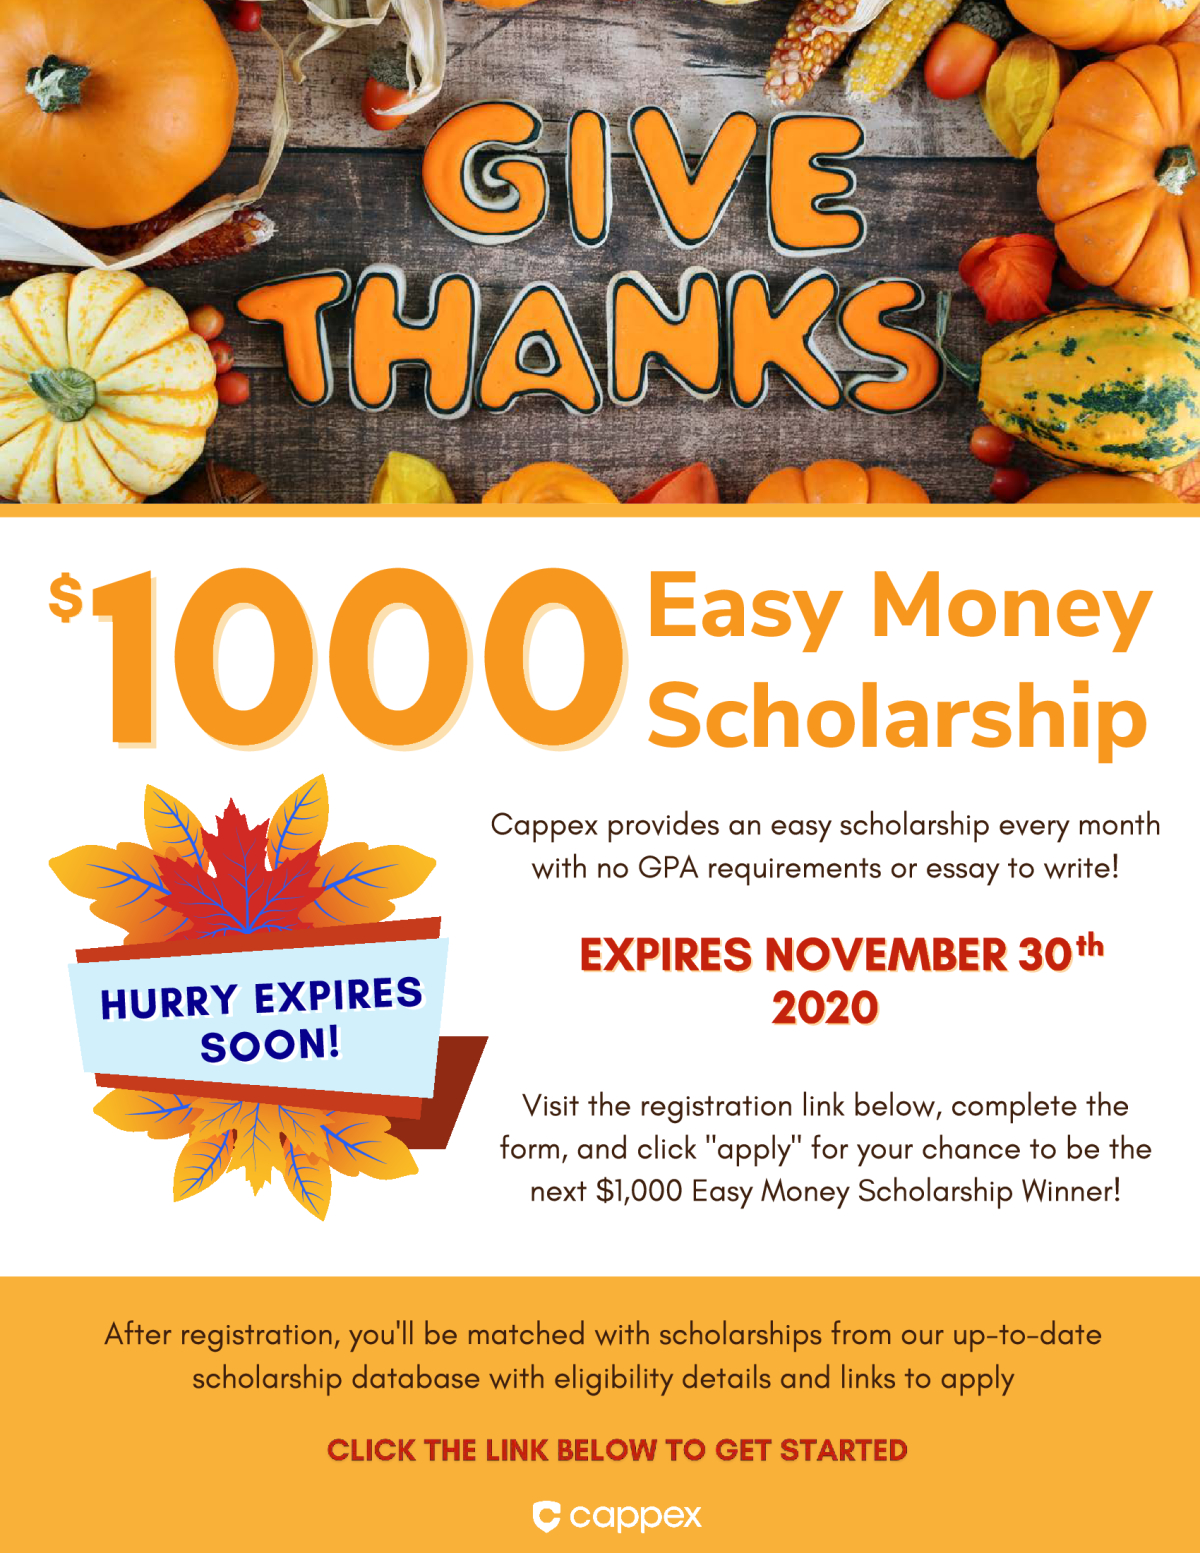 Hurry! $1,000 Easy Money Scholarship Expiring Soon!